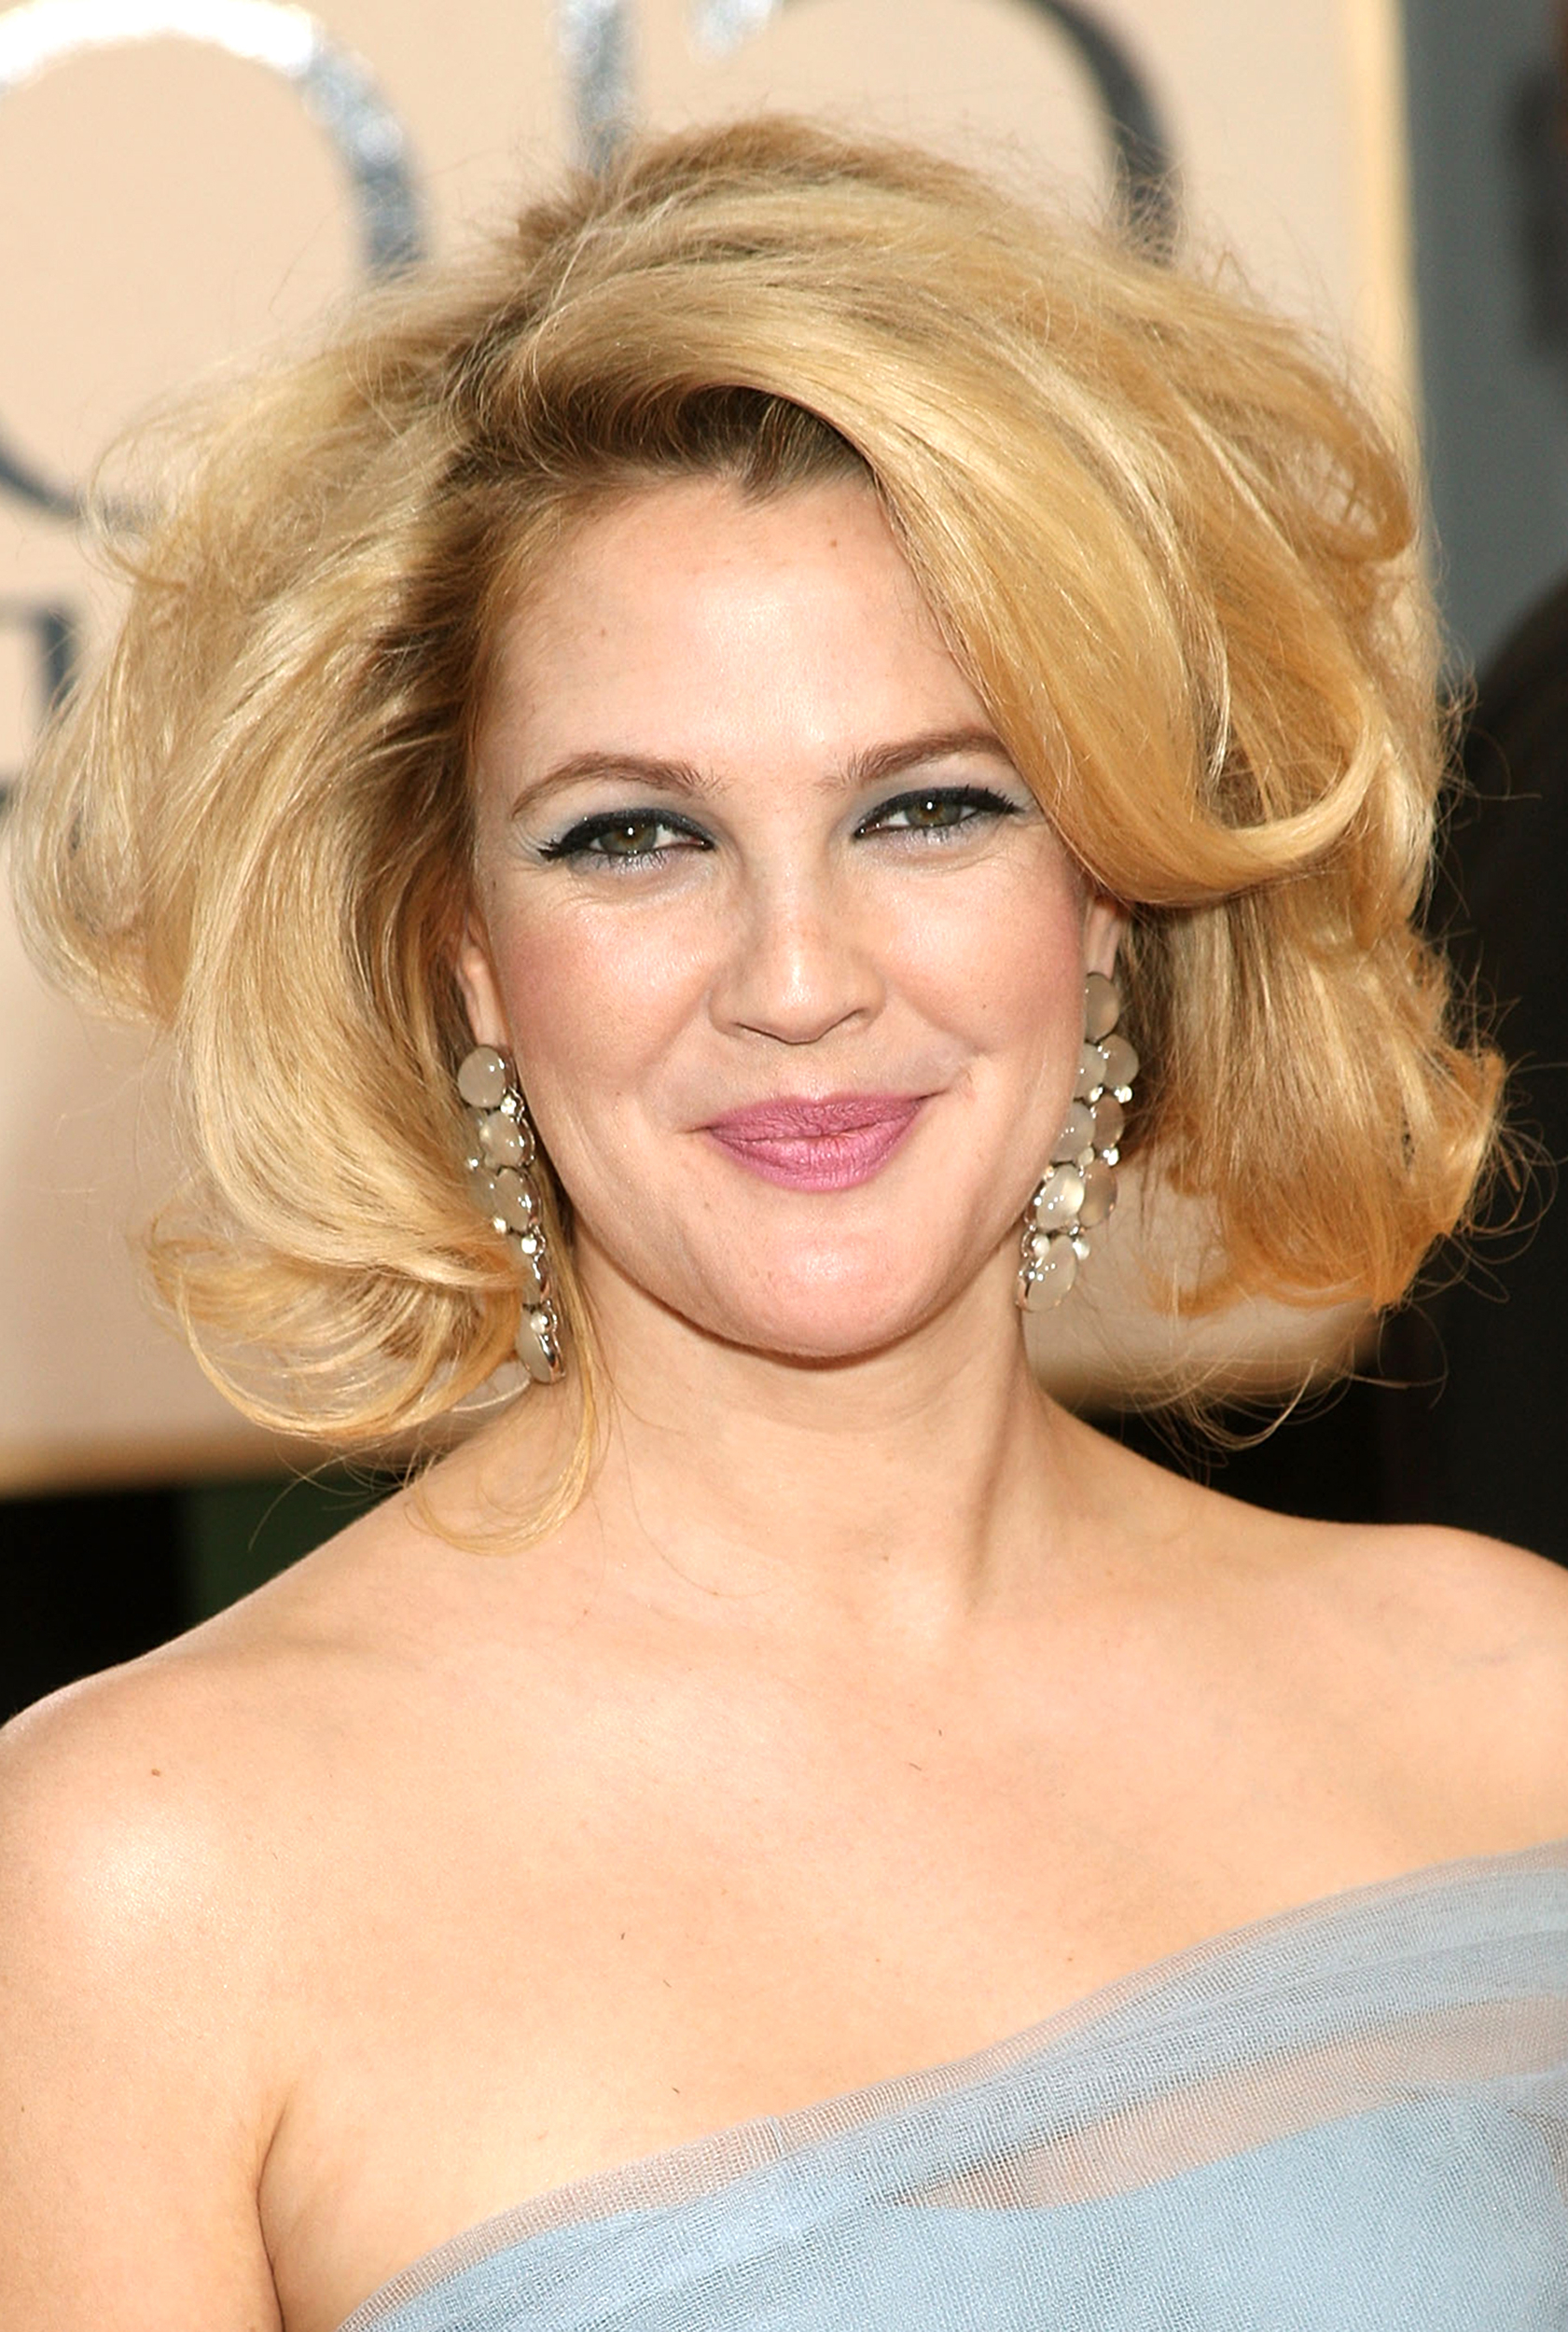 Drew Barrymore's Hair Evolution With Regard To Drew Barrymore Short Hairstyles (Gallery 17 of 25)